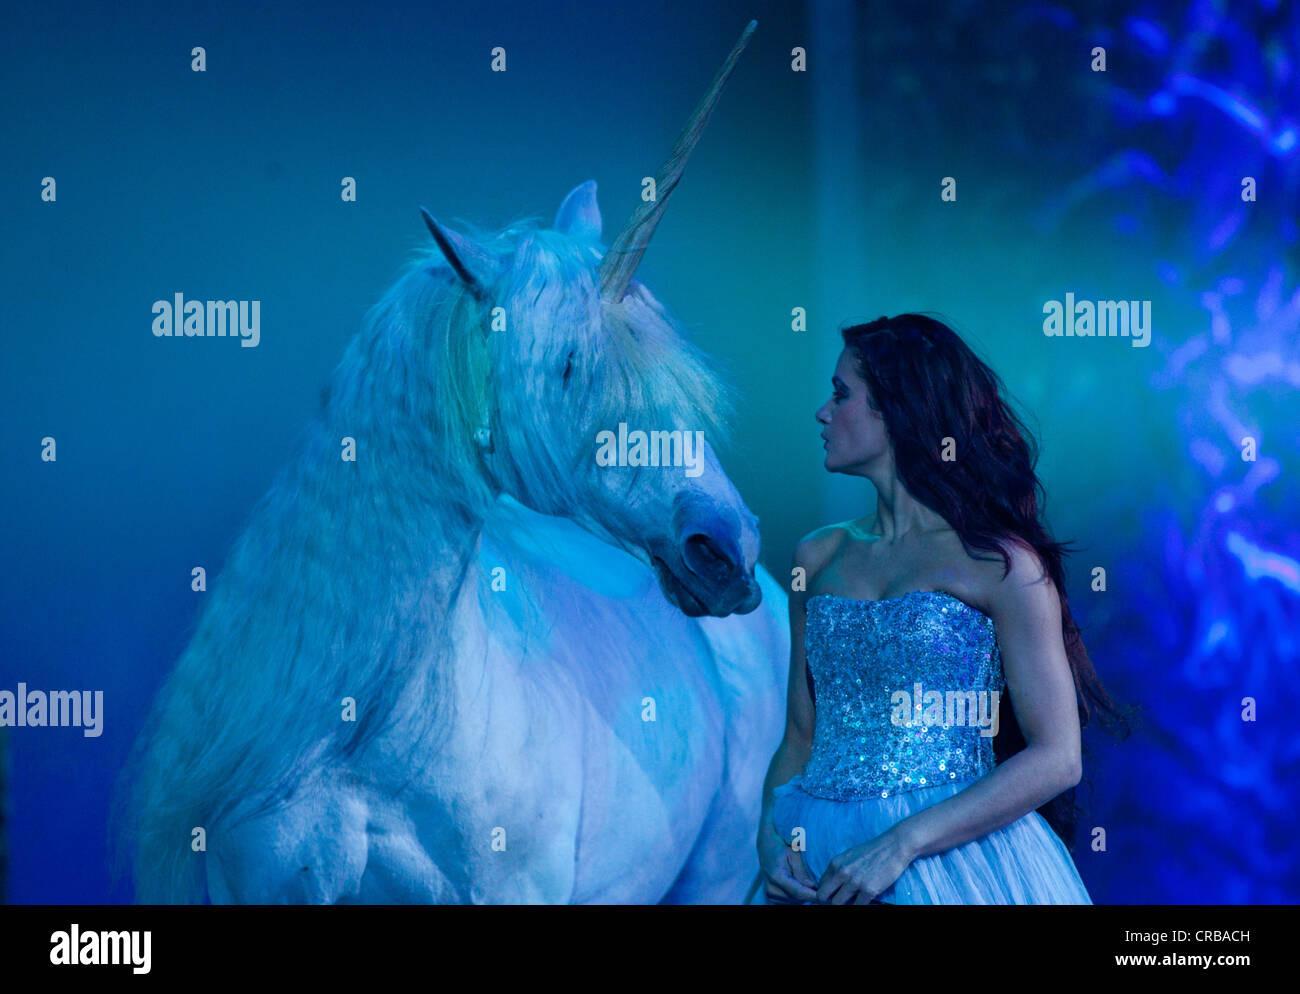 Horse as a unicorn, Magnifico, show by André Heller, world premiere on 08.02.2011, Munich, Bavaria, Germany, Europe Stock Photo